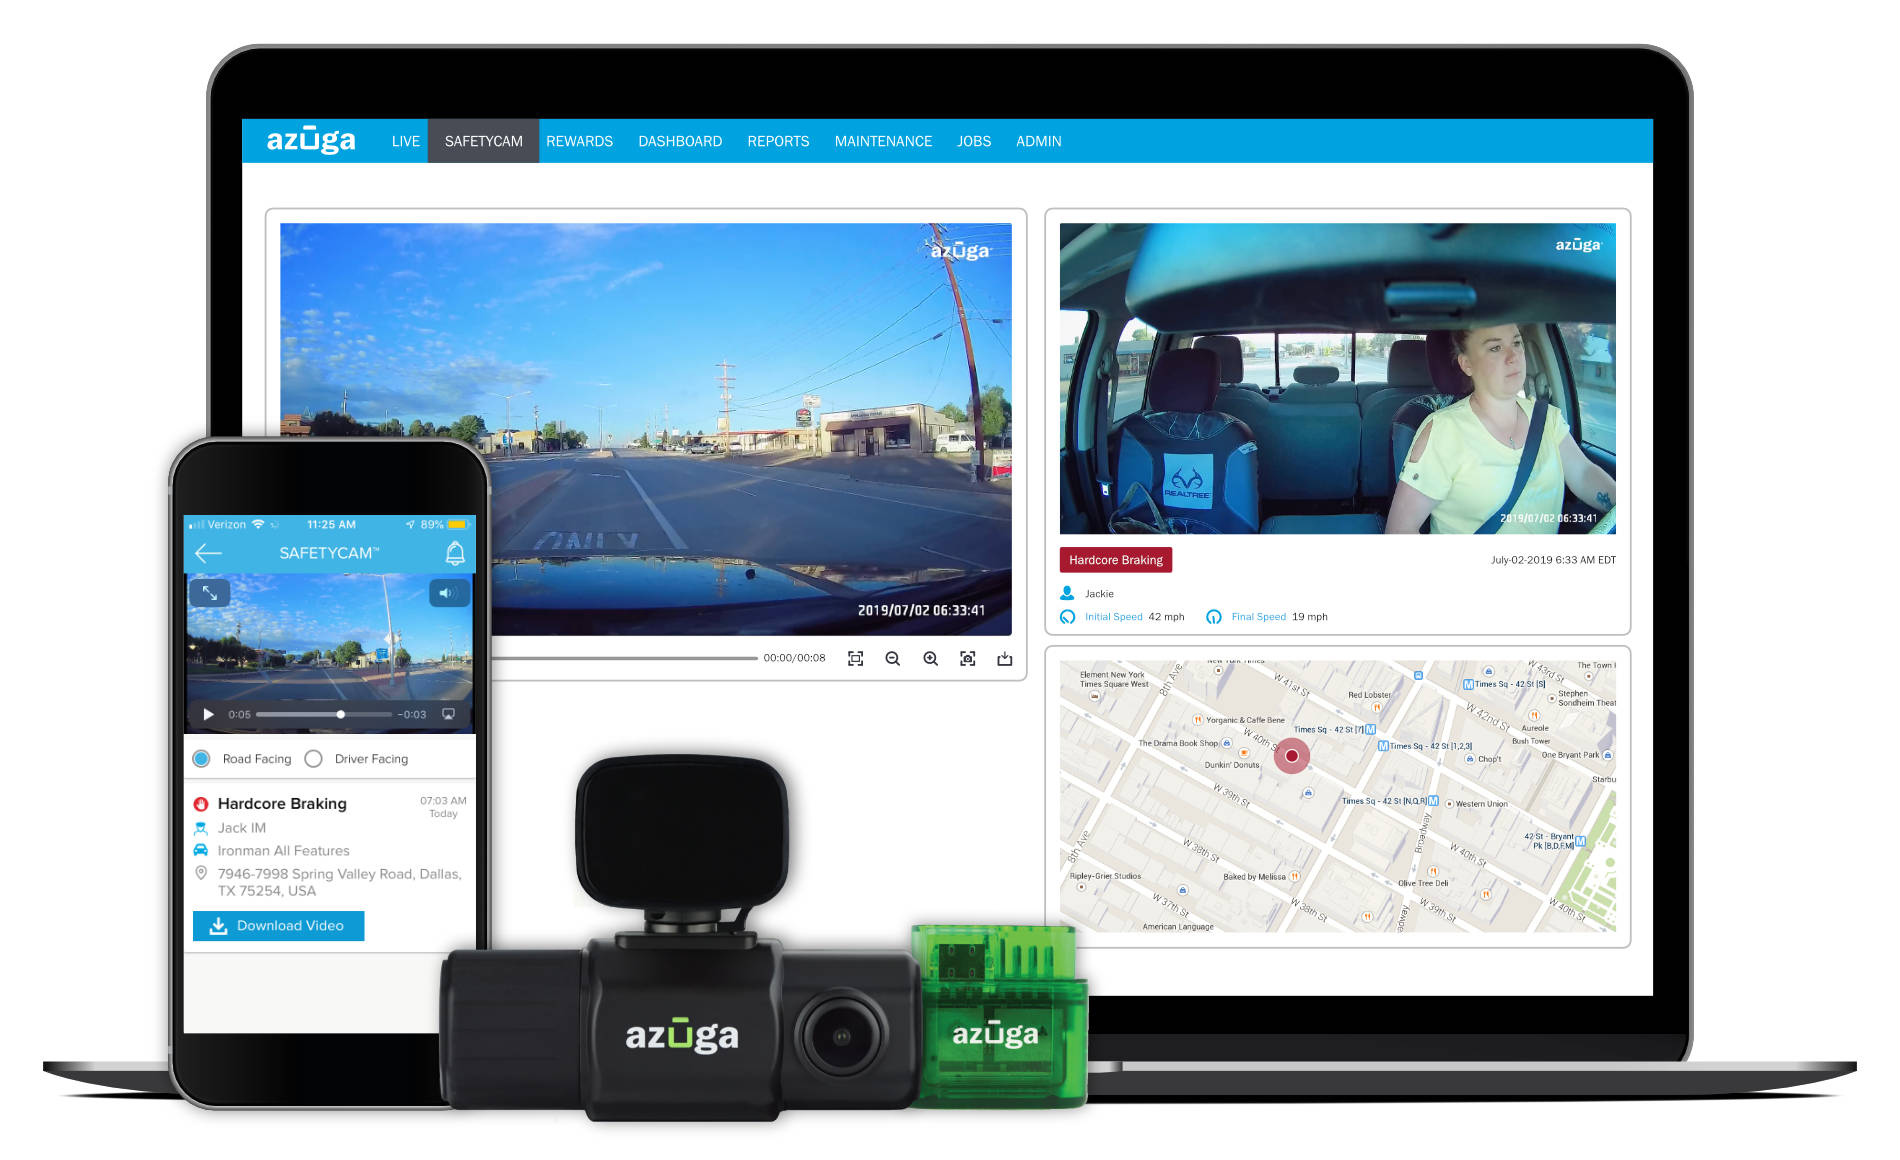 Fleet dash camera and GPS tracking software